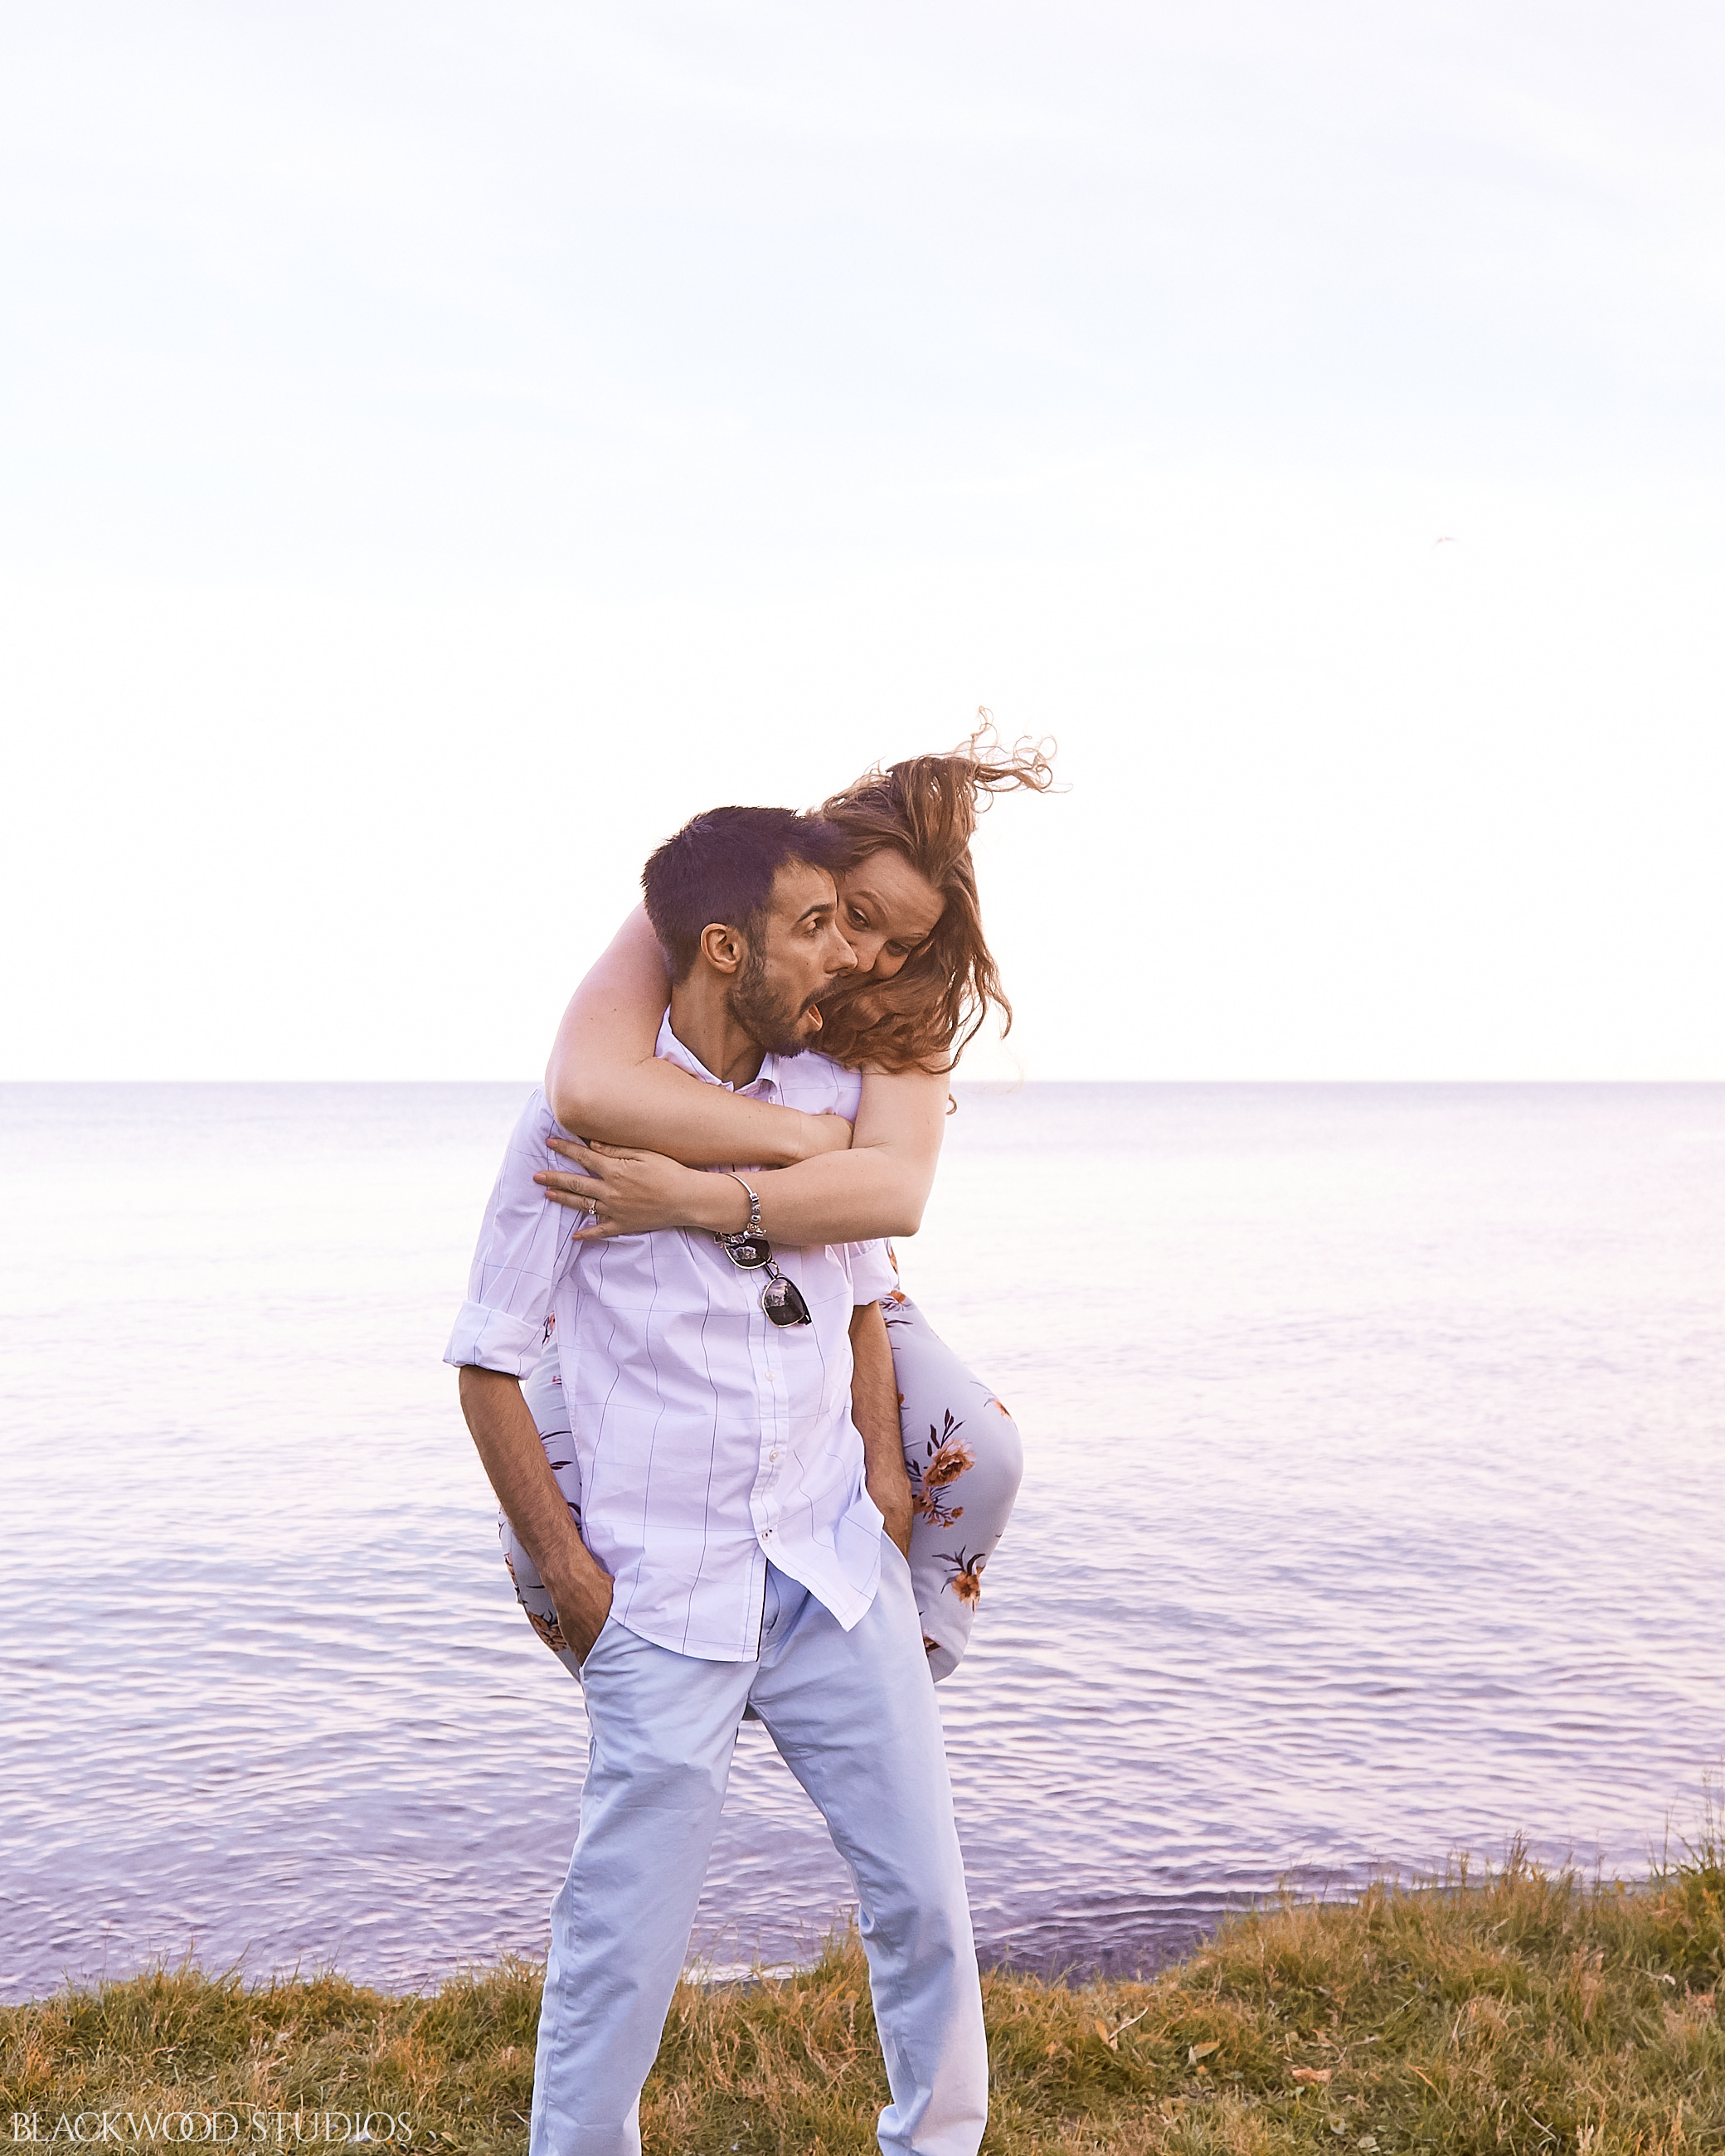 Blackwood-Studios-Photography-20190608195640-Brianna-Bryan-Engagement-Scarbourgh-Bluffs-Park-Ontario-Canada.jpg